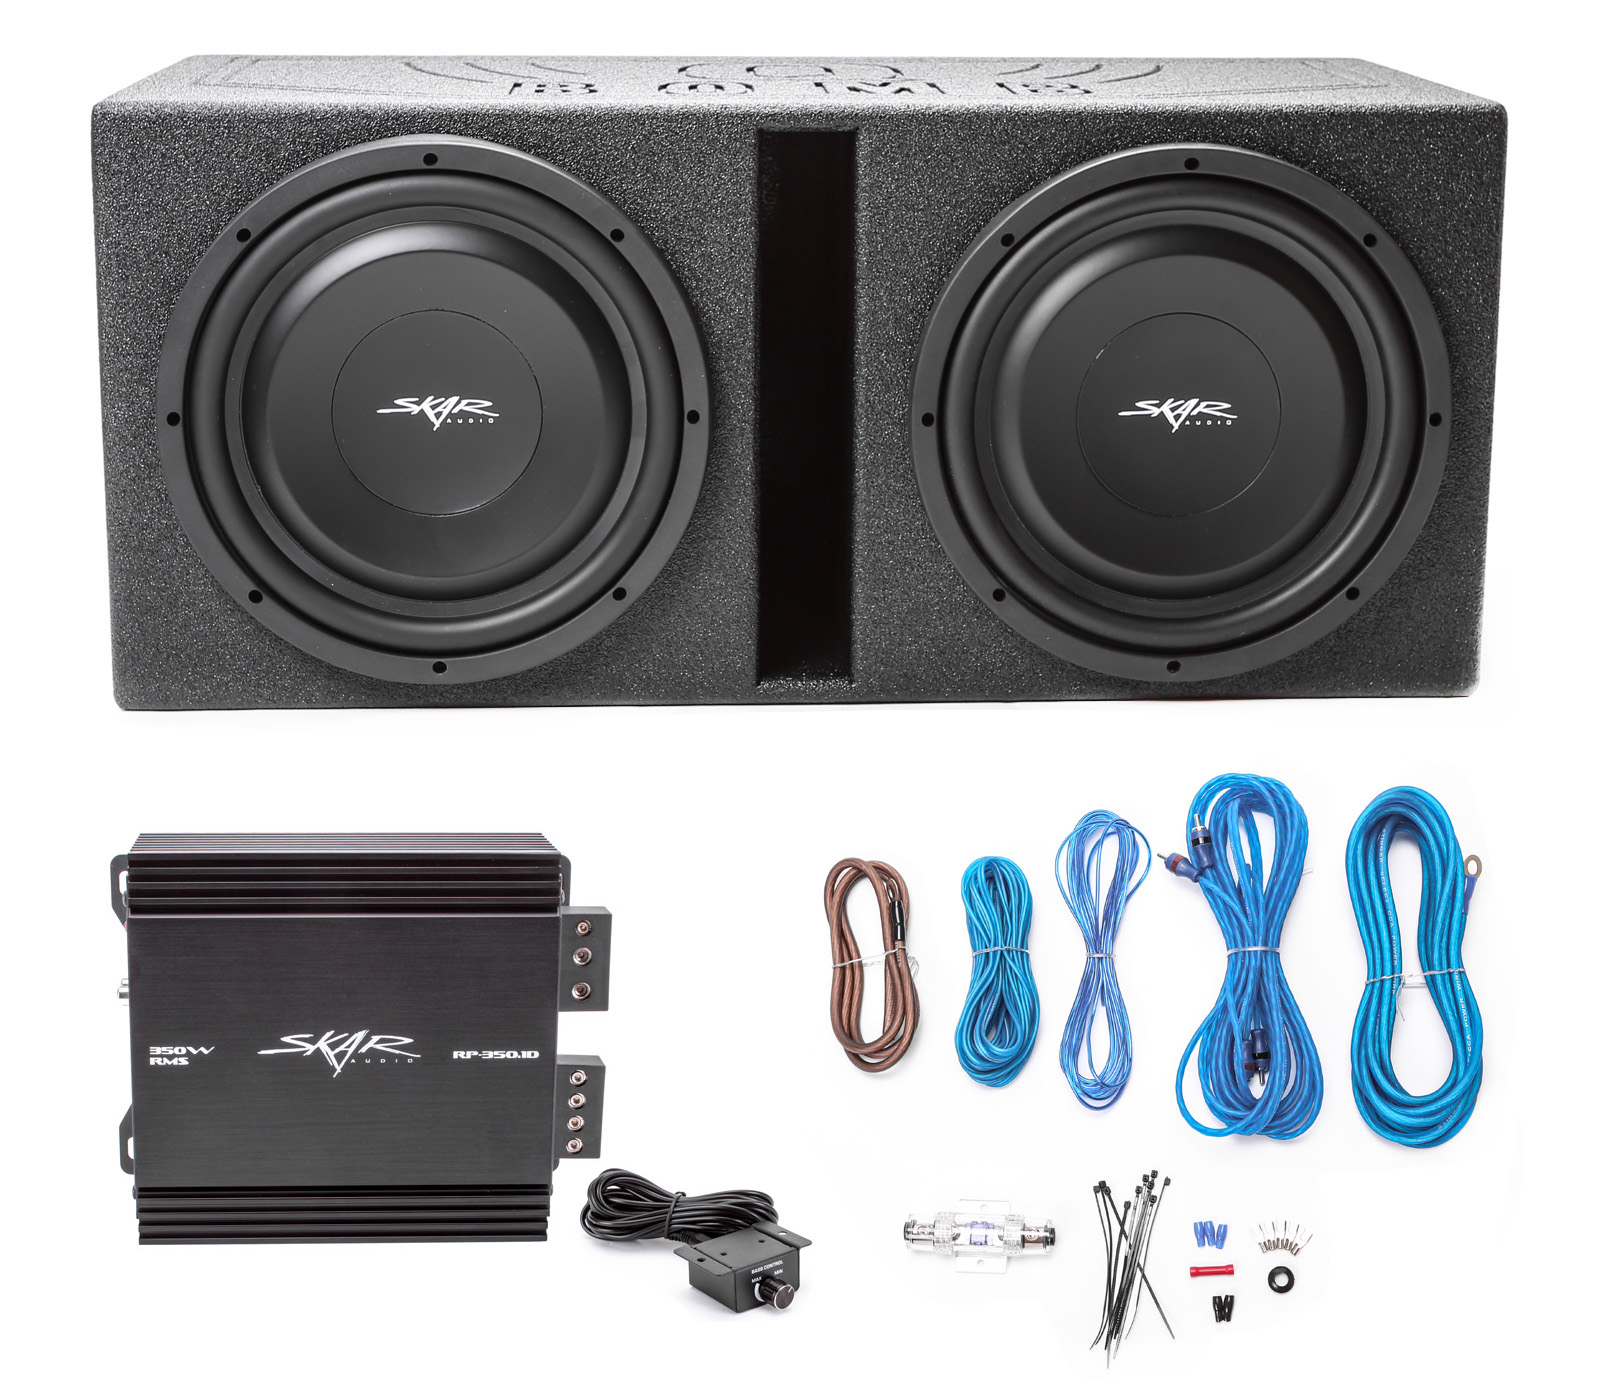 Skar Audio Wiring Diagram Will Be A Thing Panel 2 12 1600w Subwoofers With Vented Armor Lined Enclosure Rh Walmart Com Evl Setup